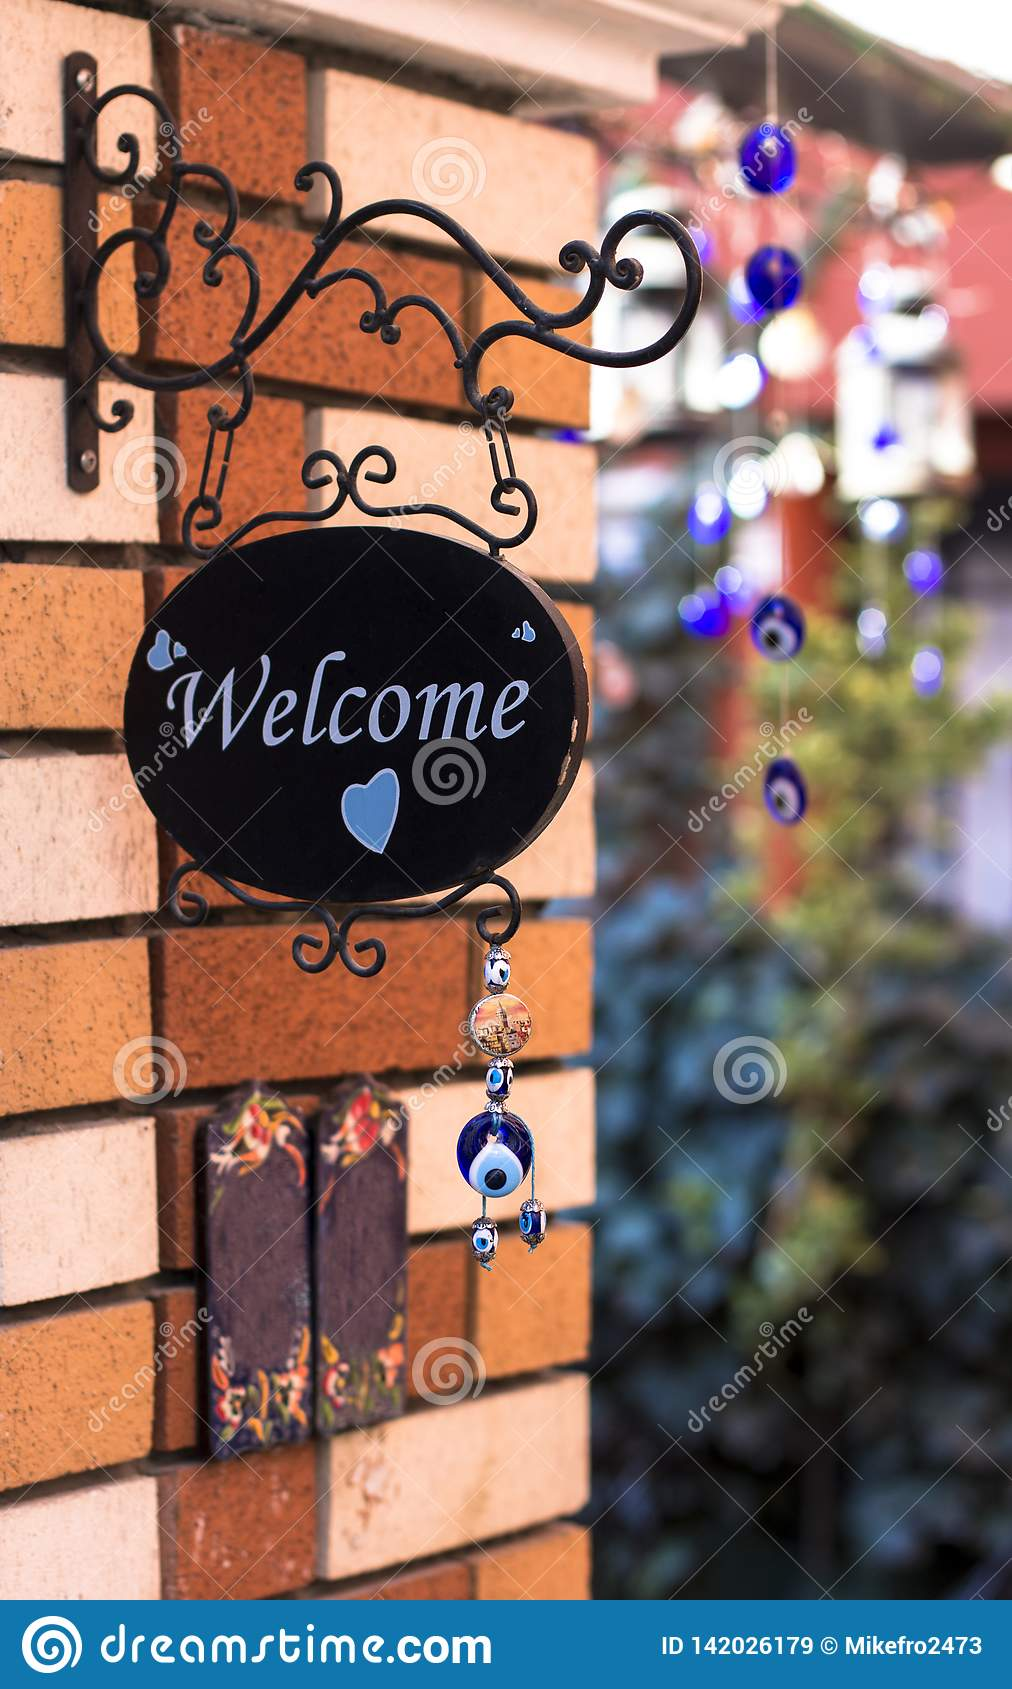 Cute welcome sign on the brick wall